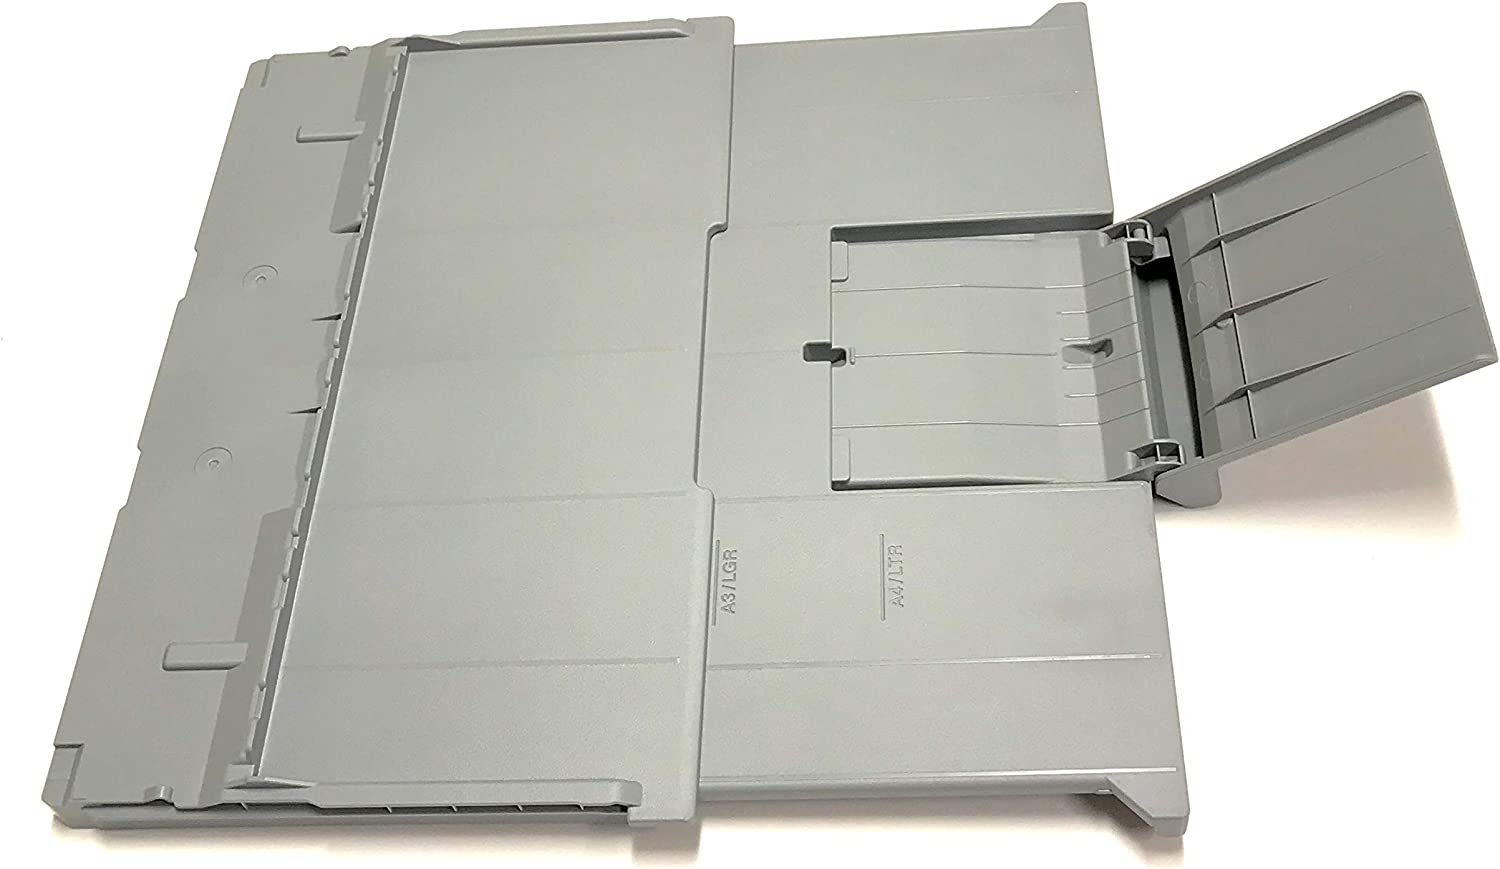 OEM Brother Output Eject Tray Specifically for Brother MFCJ6945DW, MFC-J6945DW, HLJ6000DW, HL-J6000DW